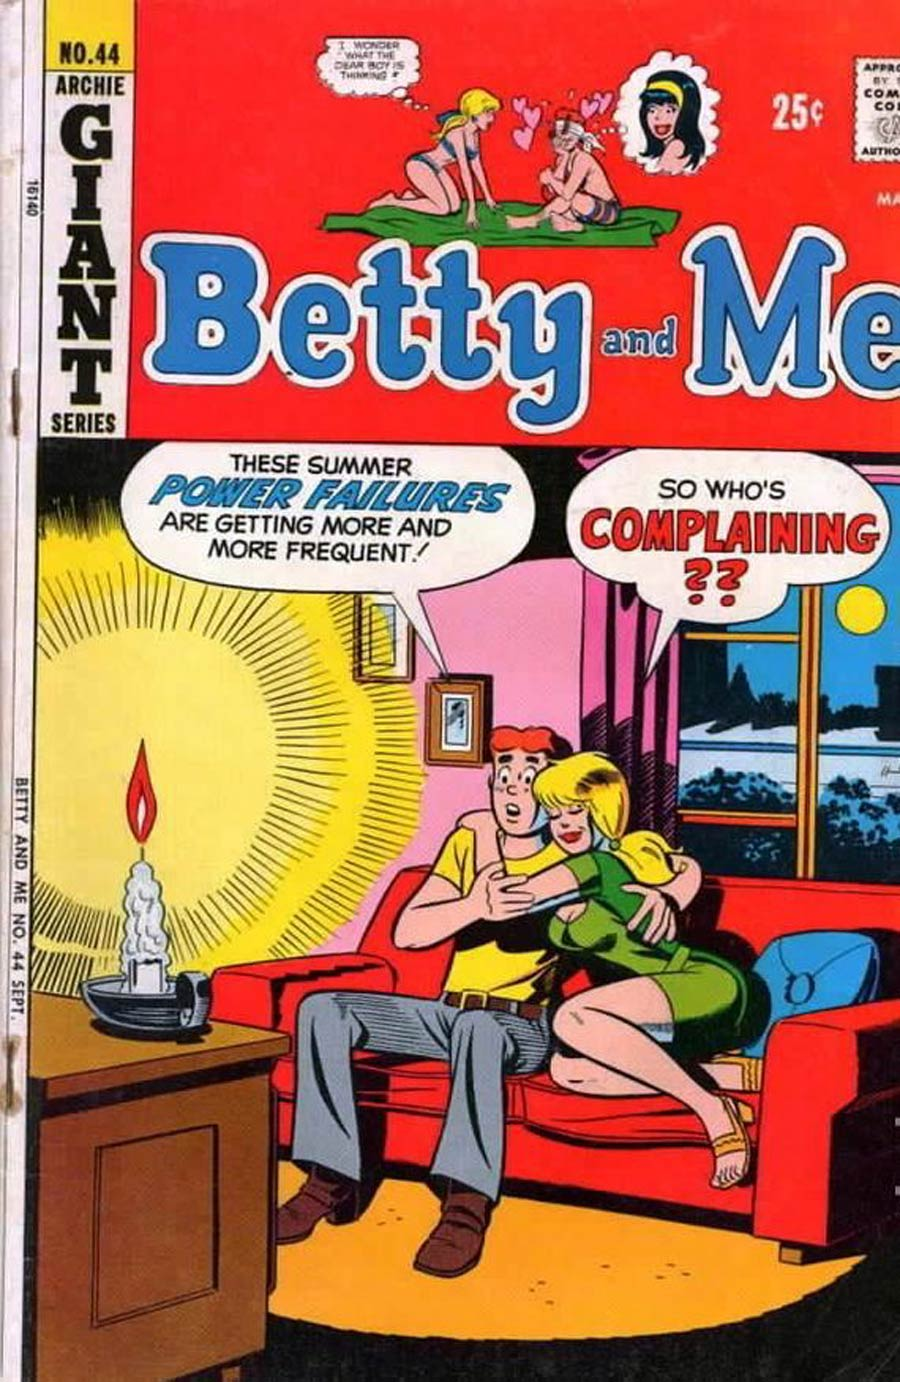 Betty And Me #44